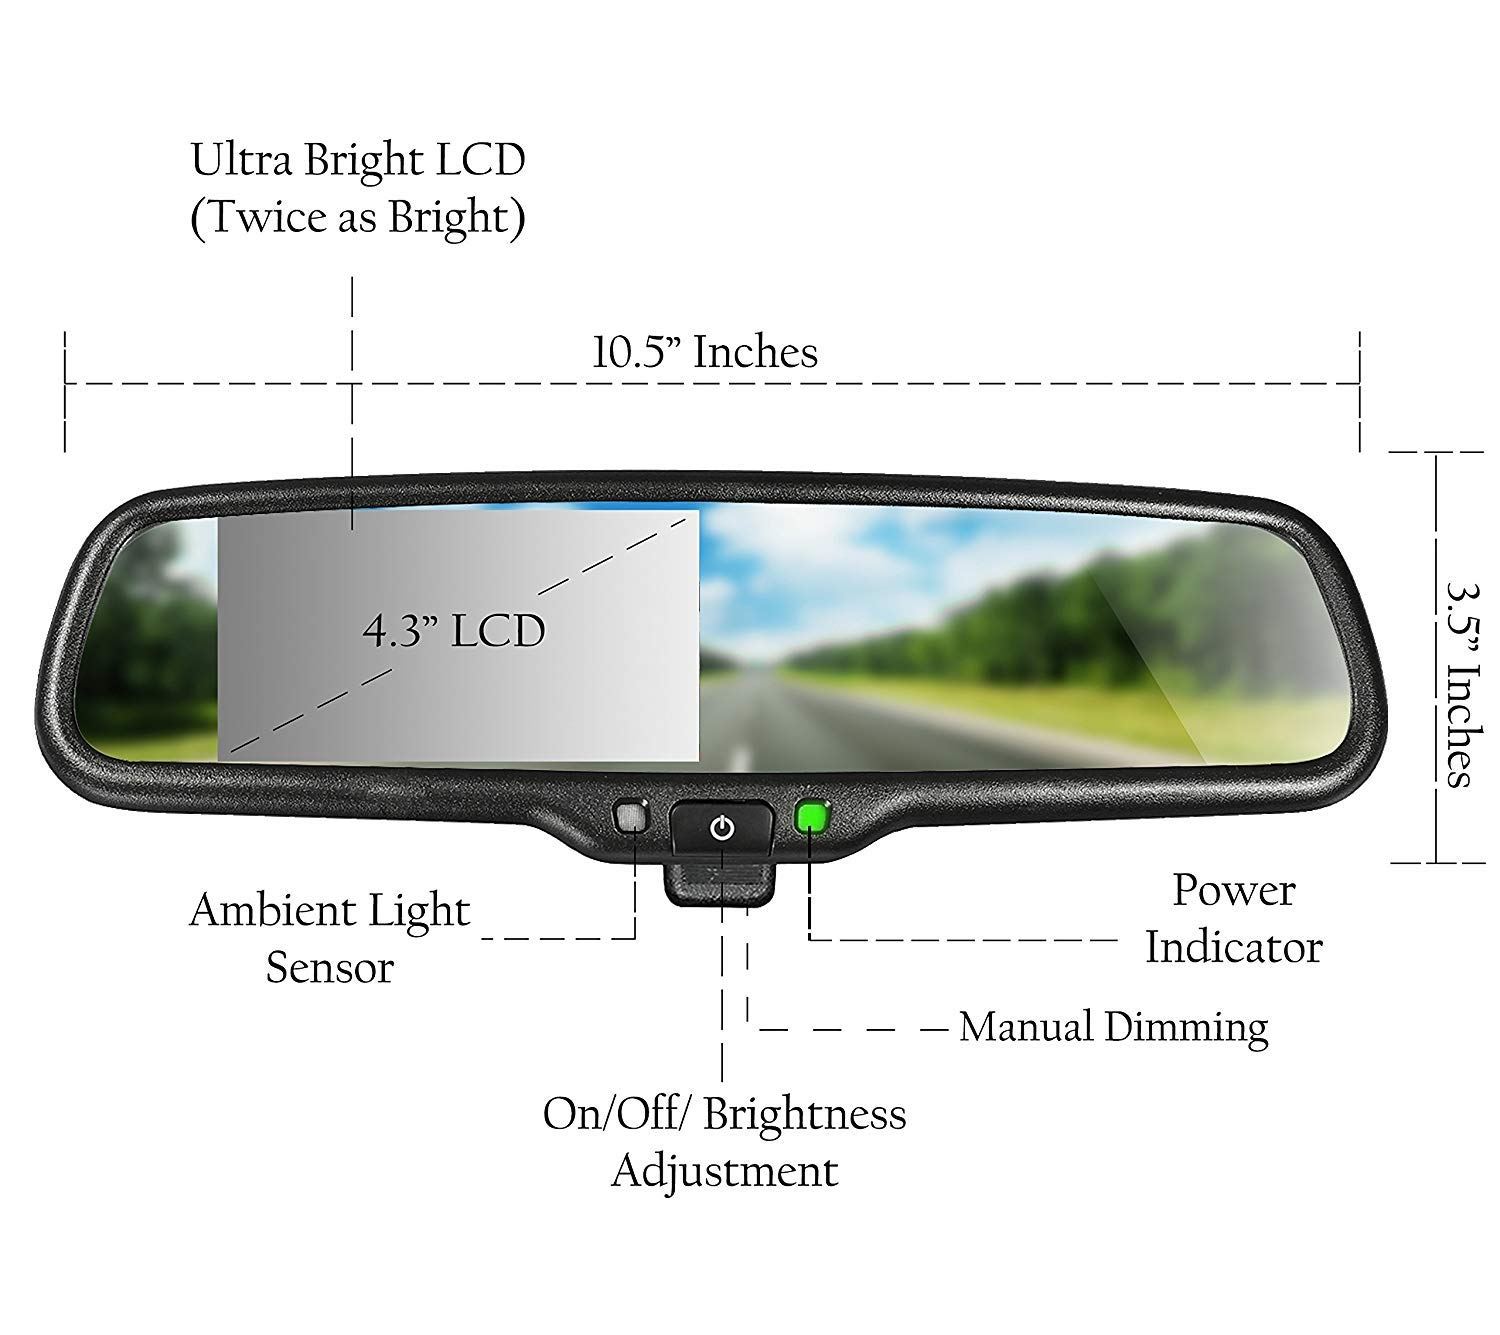 Master Tailgaters Oem Rear View Mirror With 43 Auto Toyota Oemstyle Aftermarket Fog Light Wiring Diagram Balancing Act Adjusting Brightness Lcd Manual Dimming Universal Fit Car Electronics